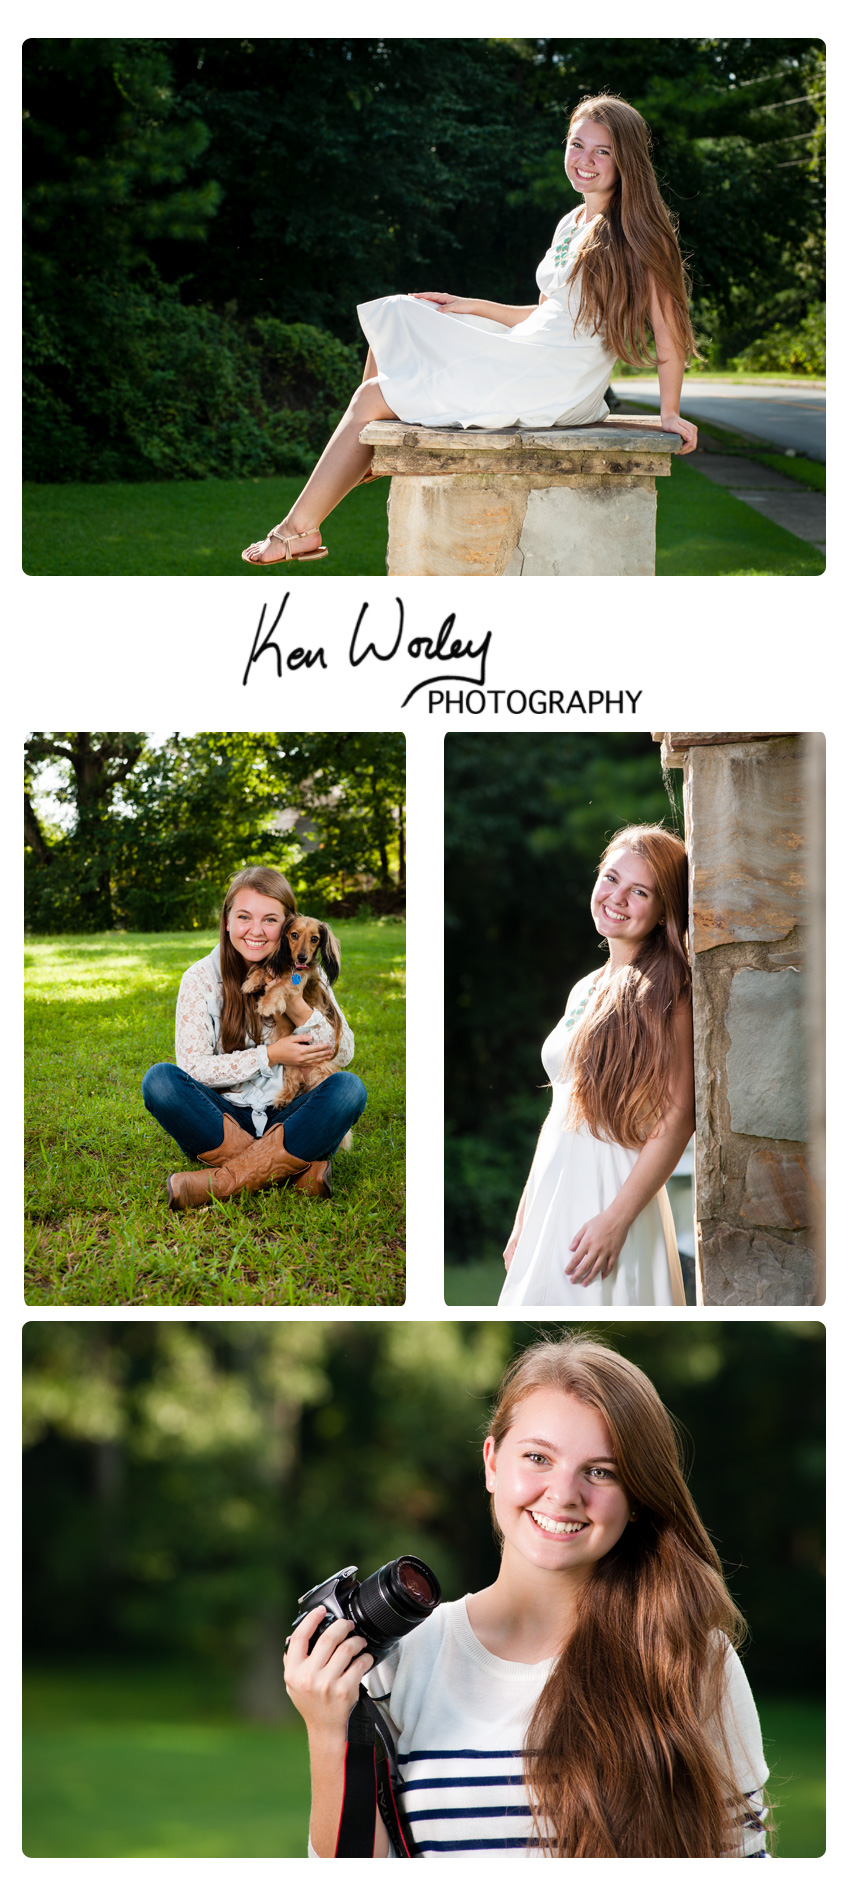 Holly: 2014 High School Senior